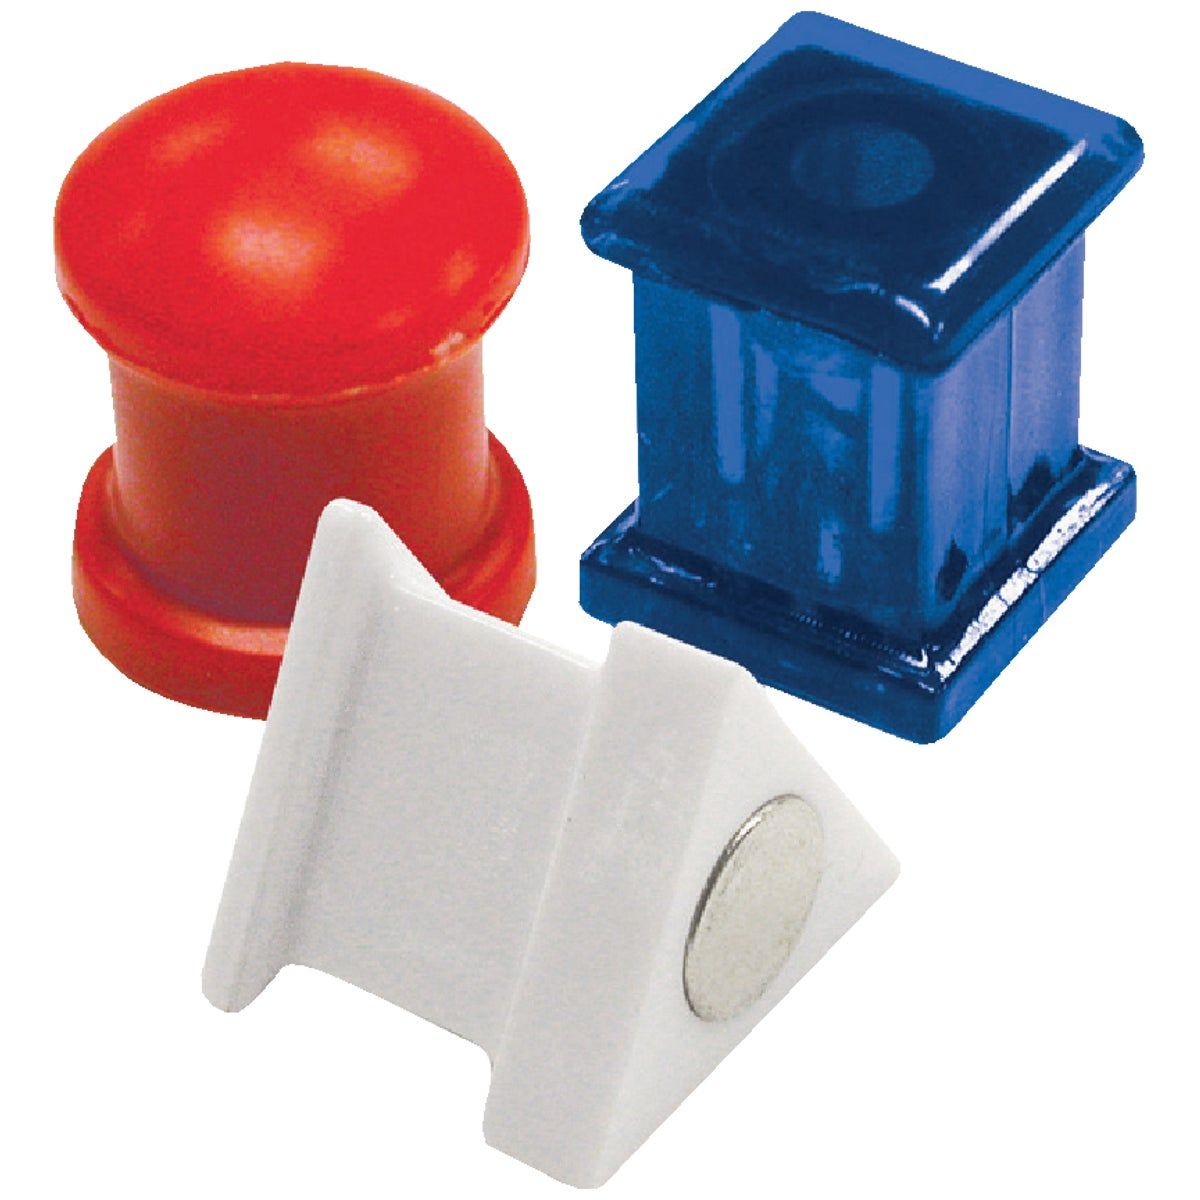 PUSH PIN MAGNETS - 07507 by Master Magnetics